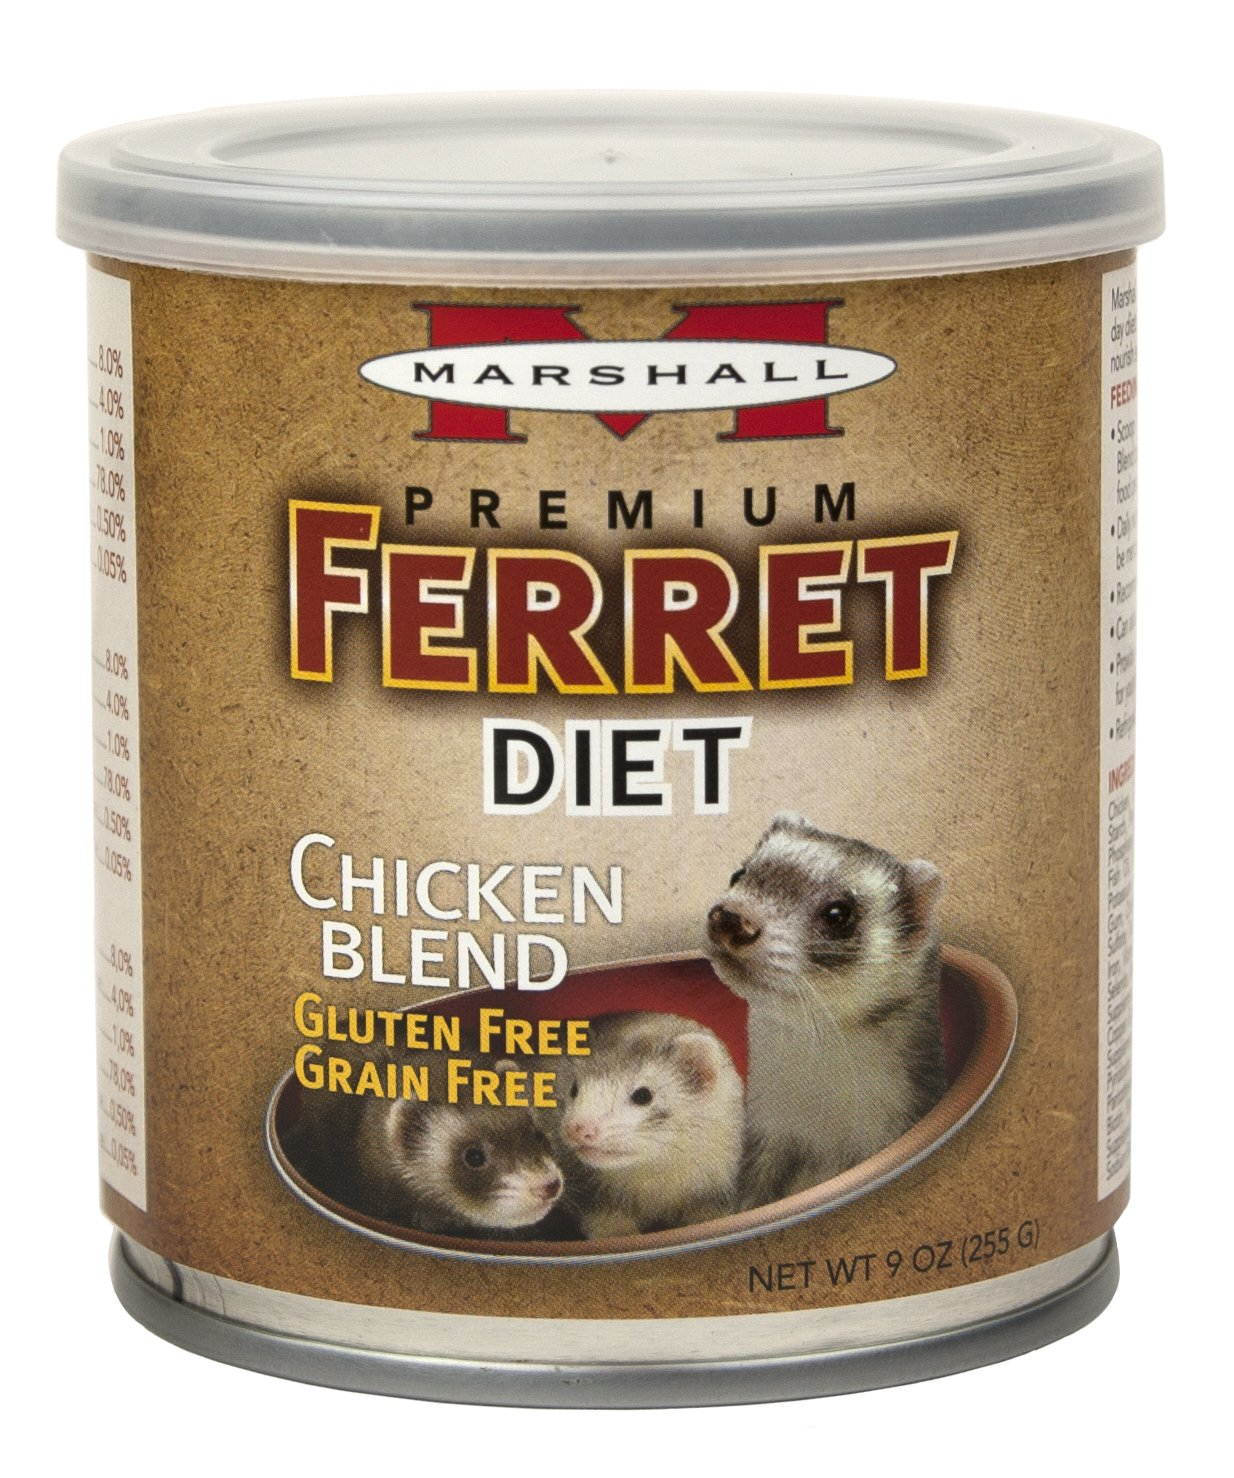 Amazon.com : Marshall Pet Prod-Food Fd-430 New Premium Ferret Diet Topper - Chicken Blend Pet-Food, 9 Oz : Pet Supplies